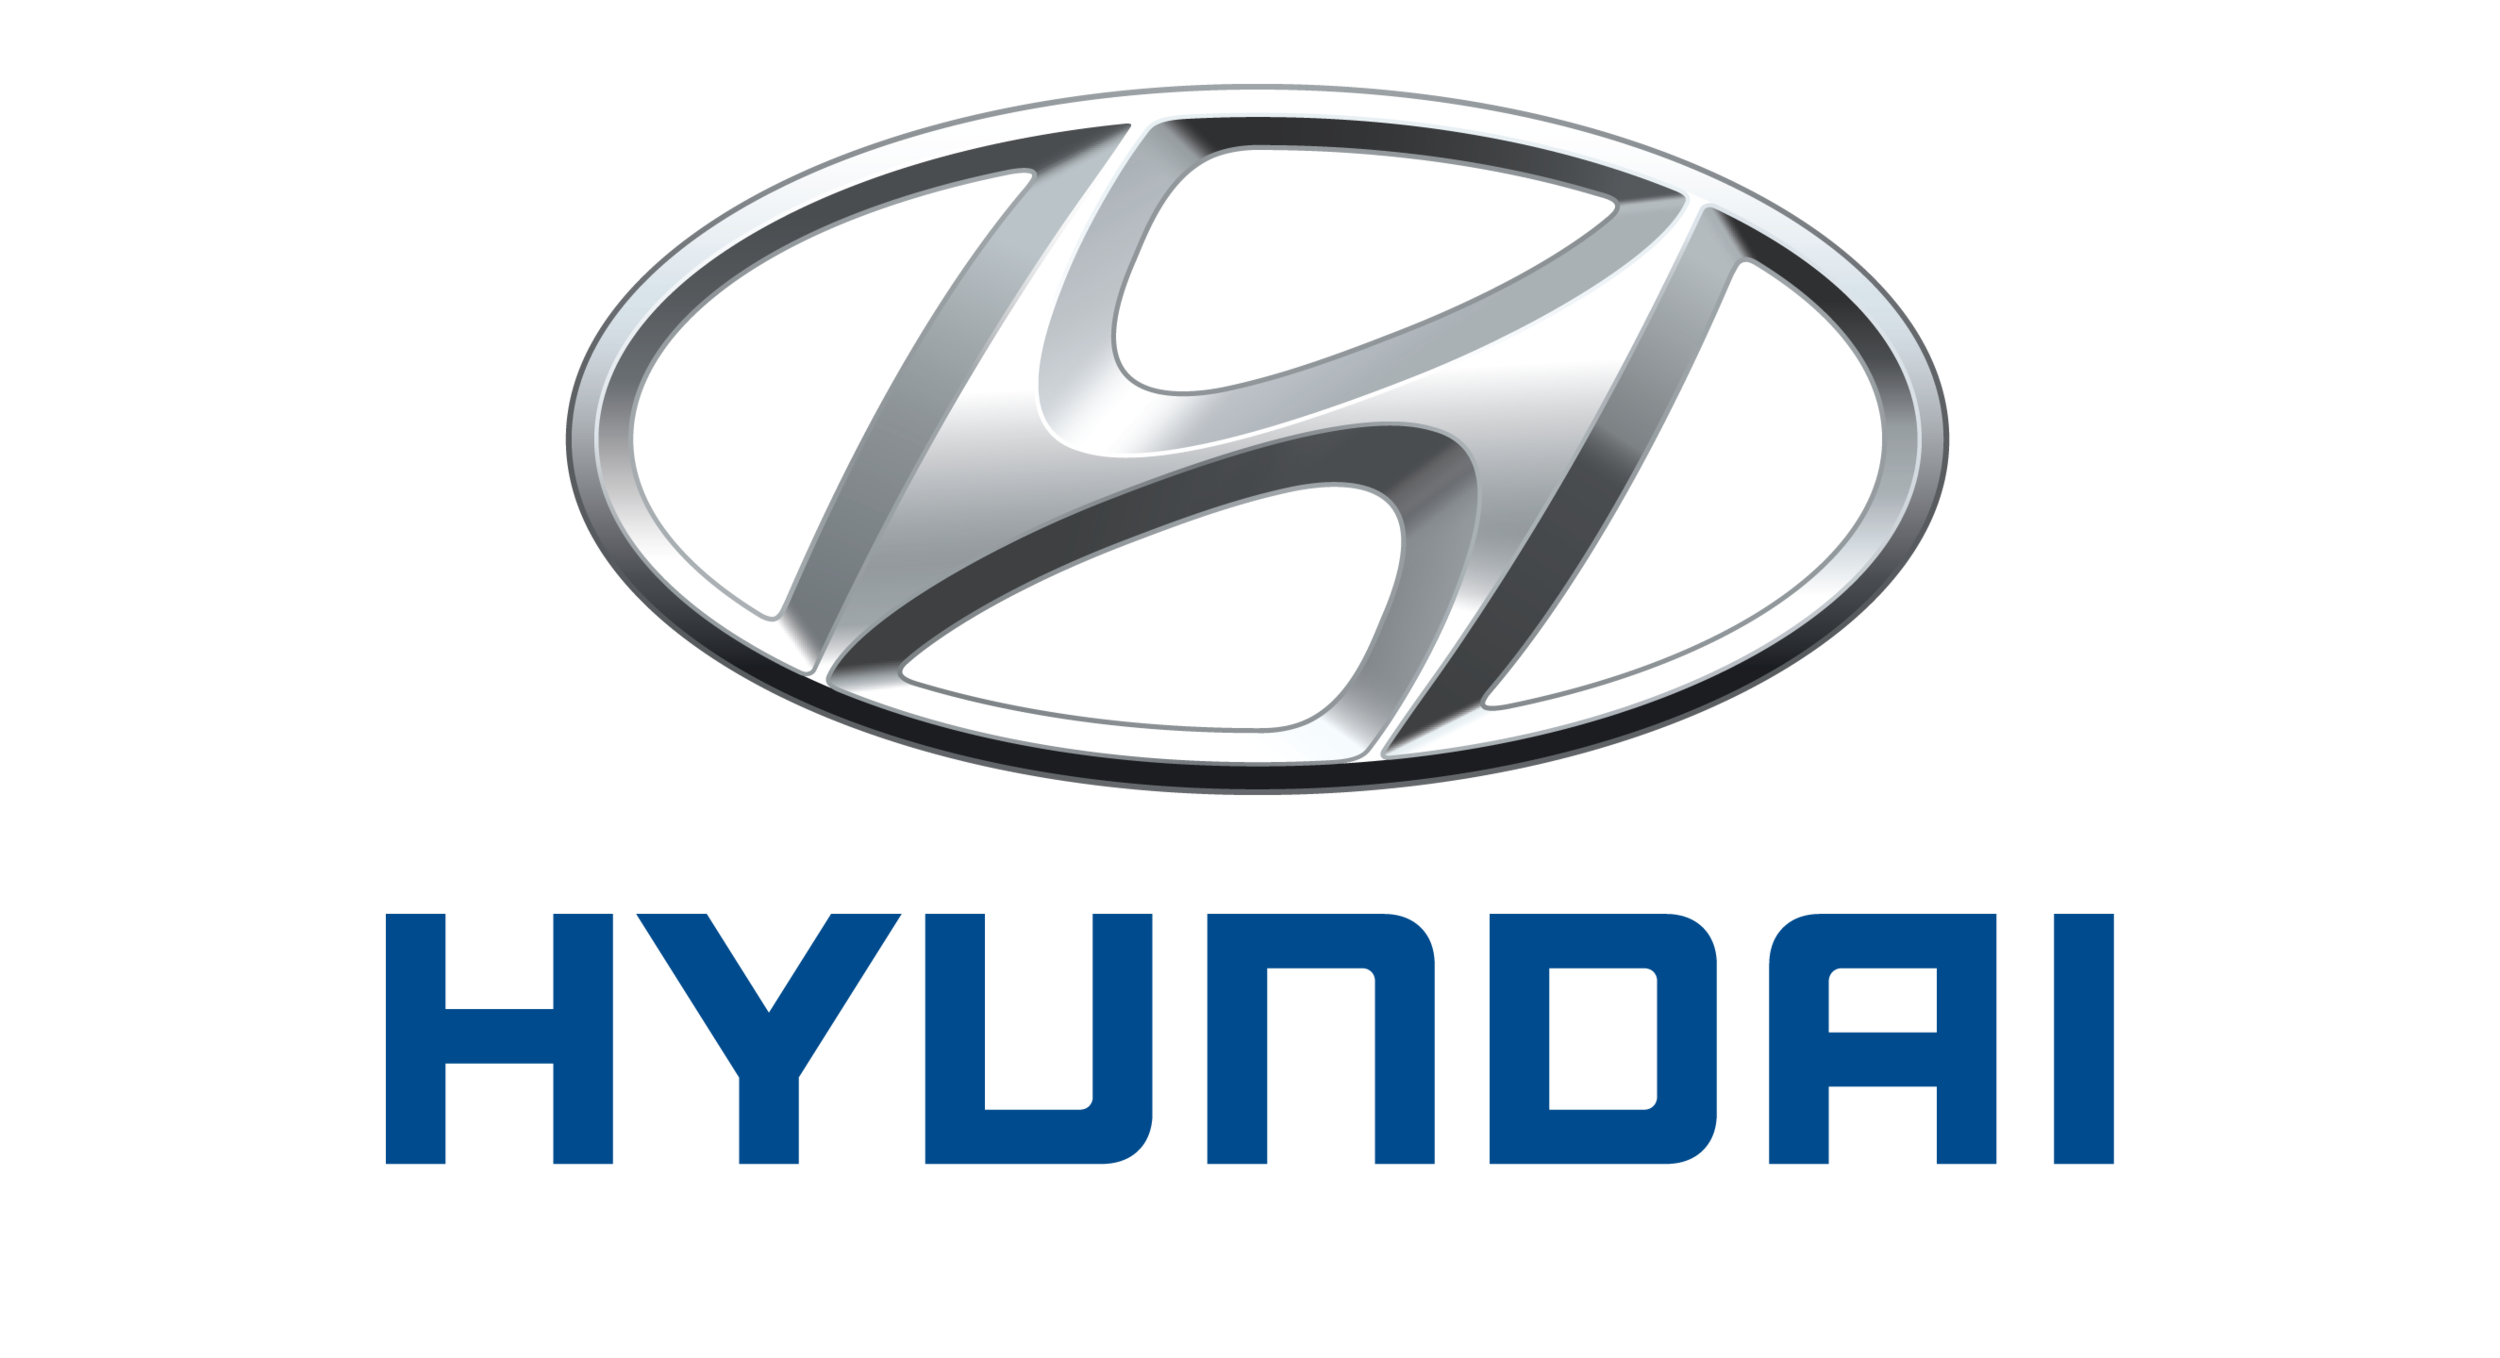 Hyundai Influencer Marketing Campaign